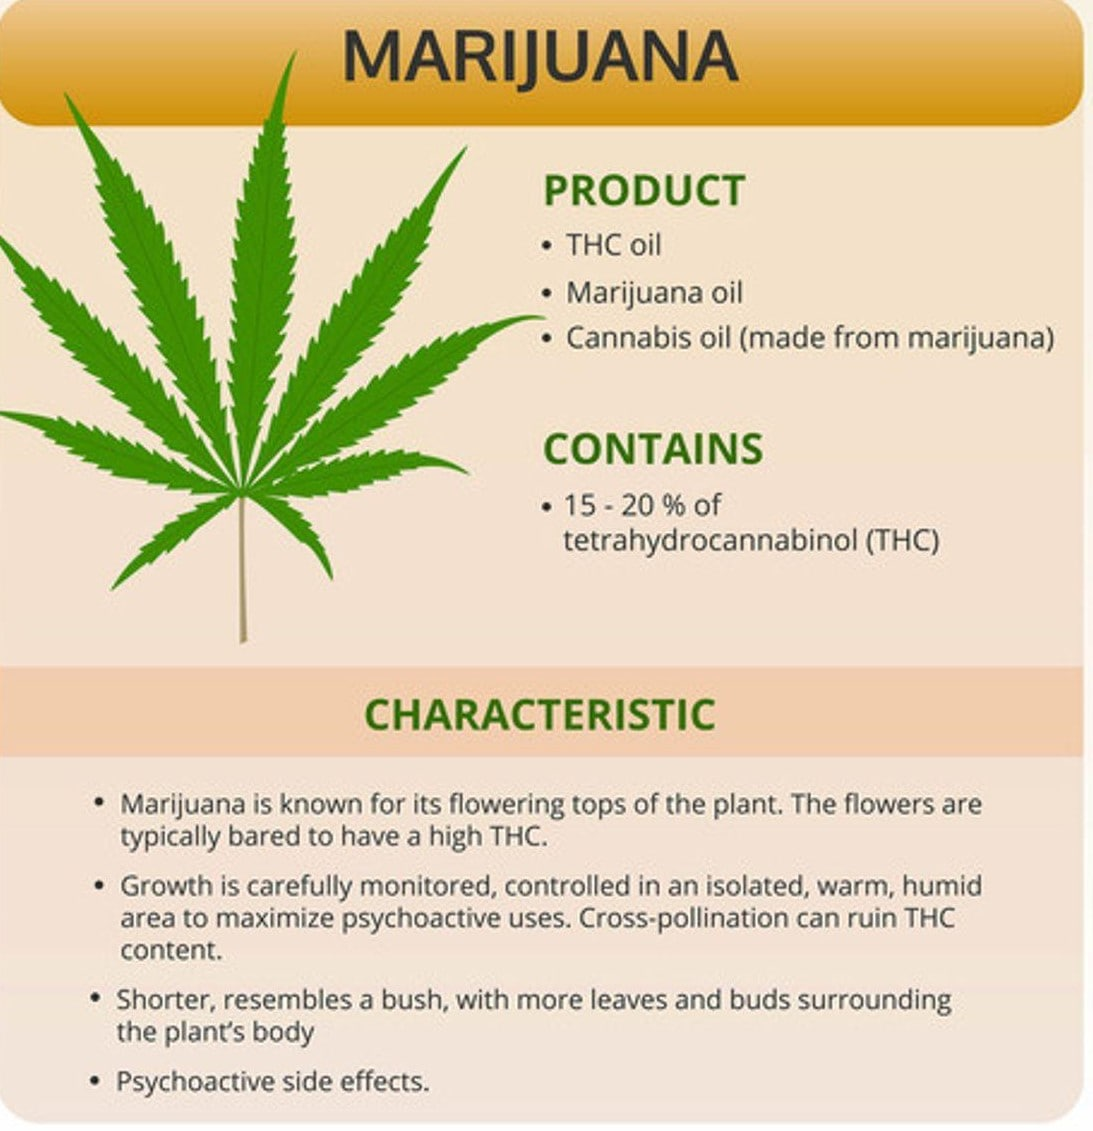 Information on Marijuana